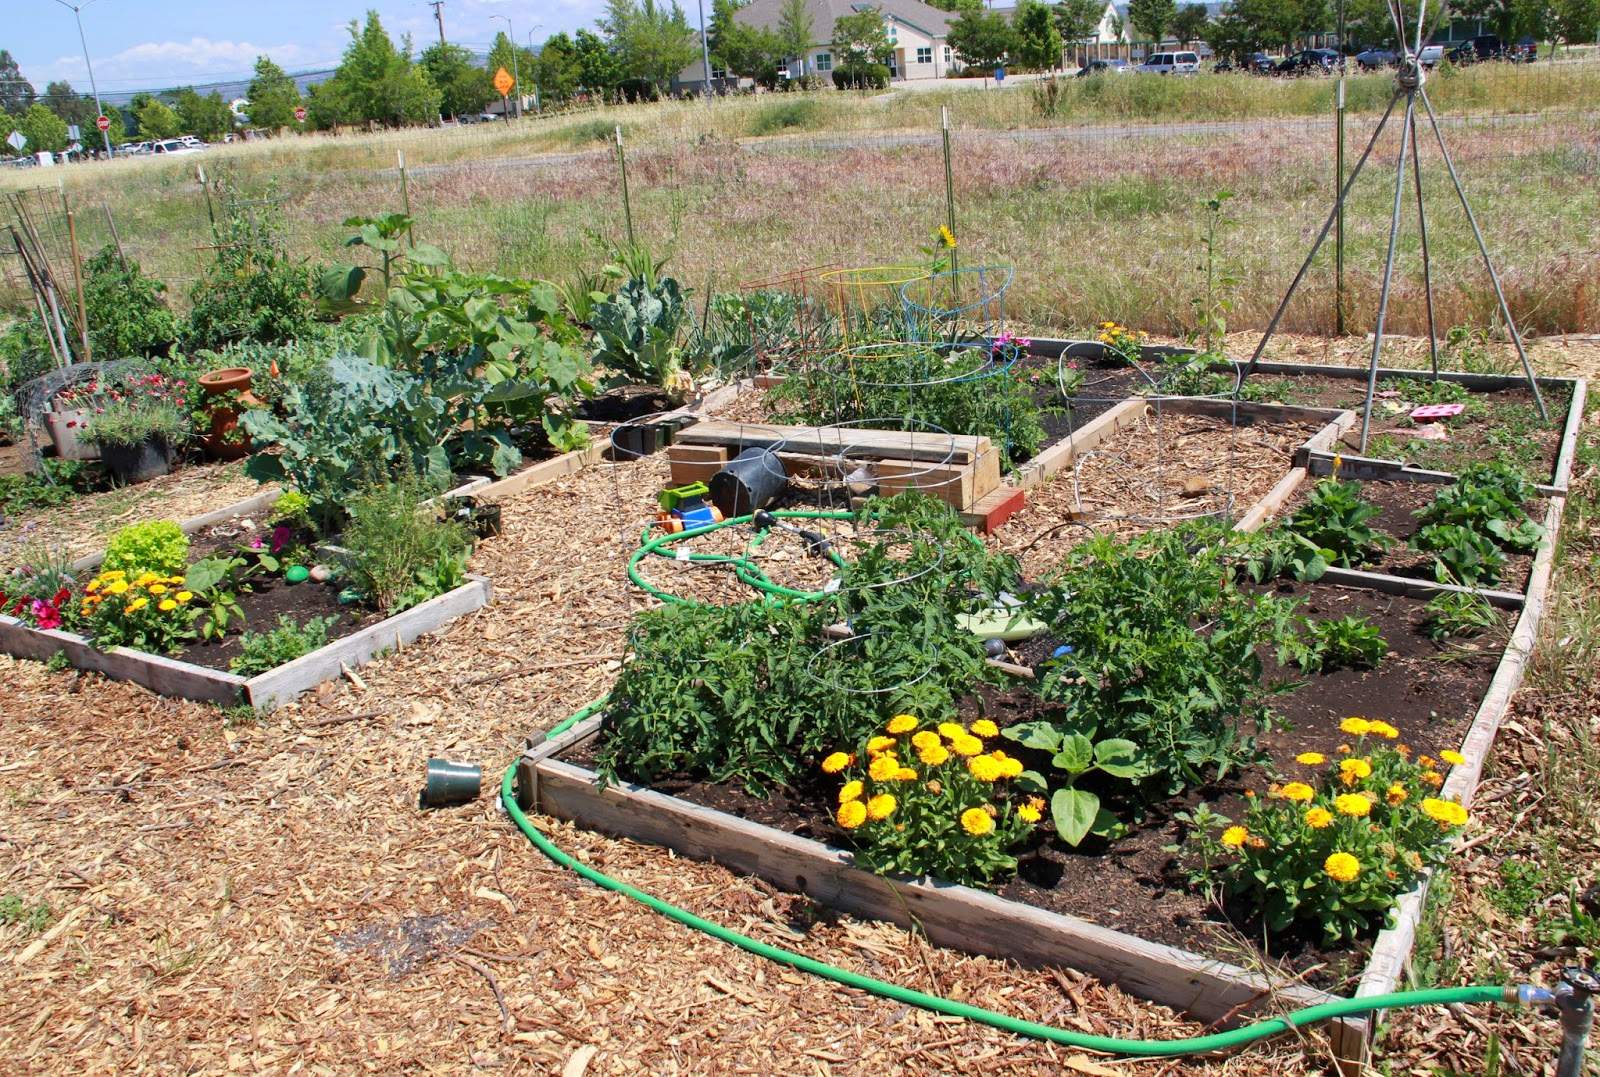 photos 7 different community garden plot designs